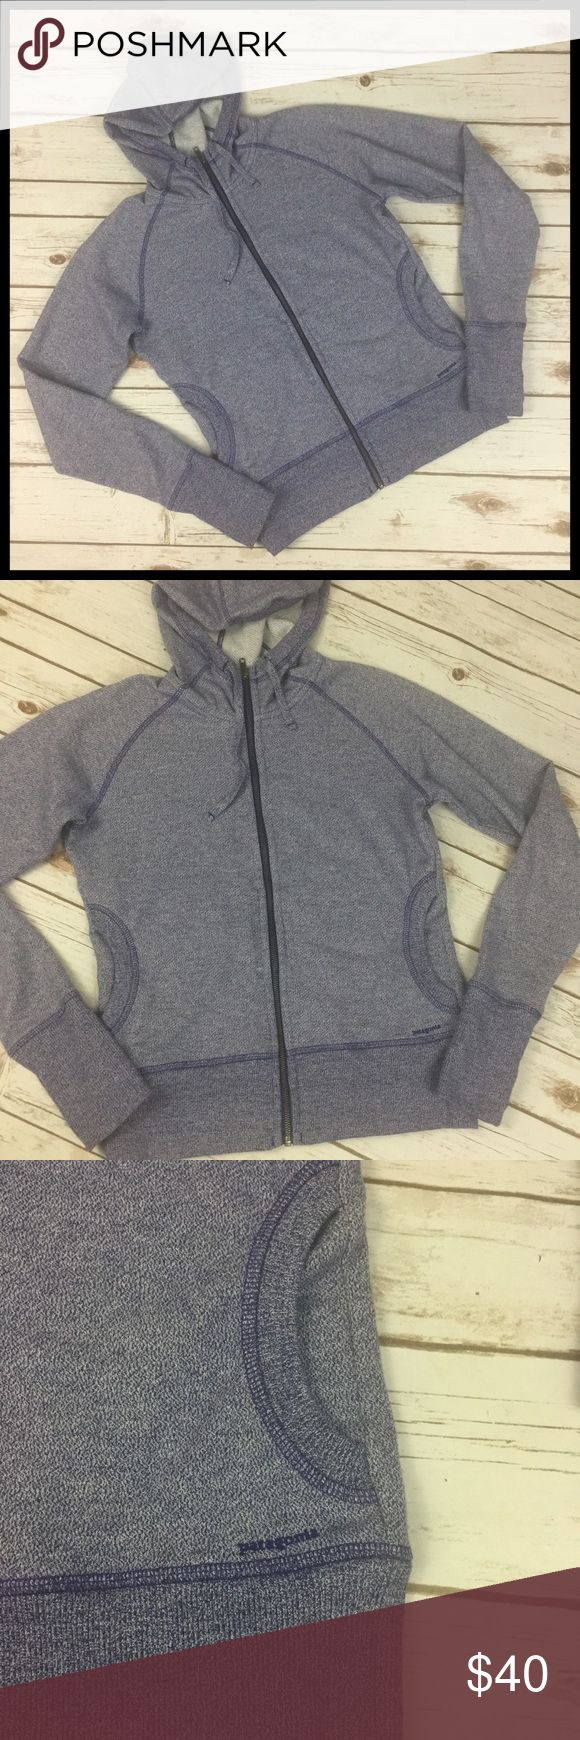 Patagonia Medium Zip Front Hoodie Purple Patagonia Zip Front Hoodie / Sweatshirt Jacket - Purple Women's Size Medium  Gently used - no stains or tears 60% Polyester / 40% Cotton  Sweatshirt fabric jacket Full zip Long sleeves w/ thumbholes Attached hood w/ drawstring Hand pockets  Measurements (in inches): Chest (armpit to armpit) - 20 Sleeve (wrist to neckline) - 32.5 Length (back of neck to bottom hem) - 23.5 Patagonia Jackets & Coats